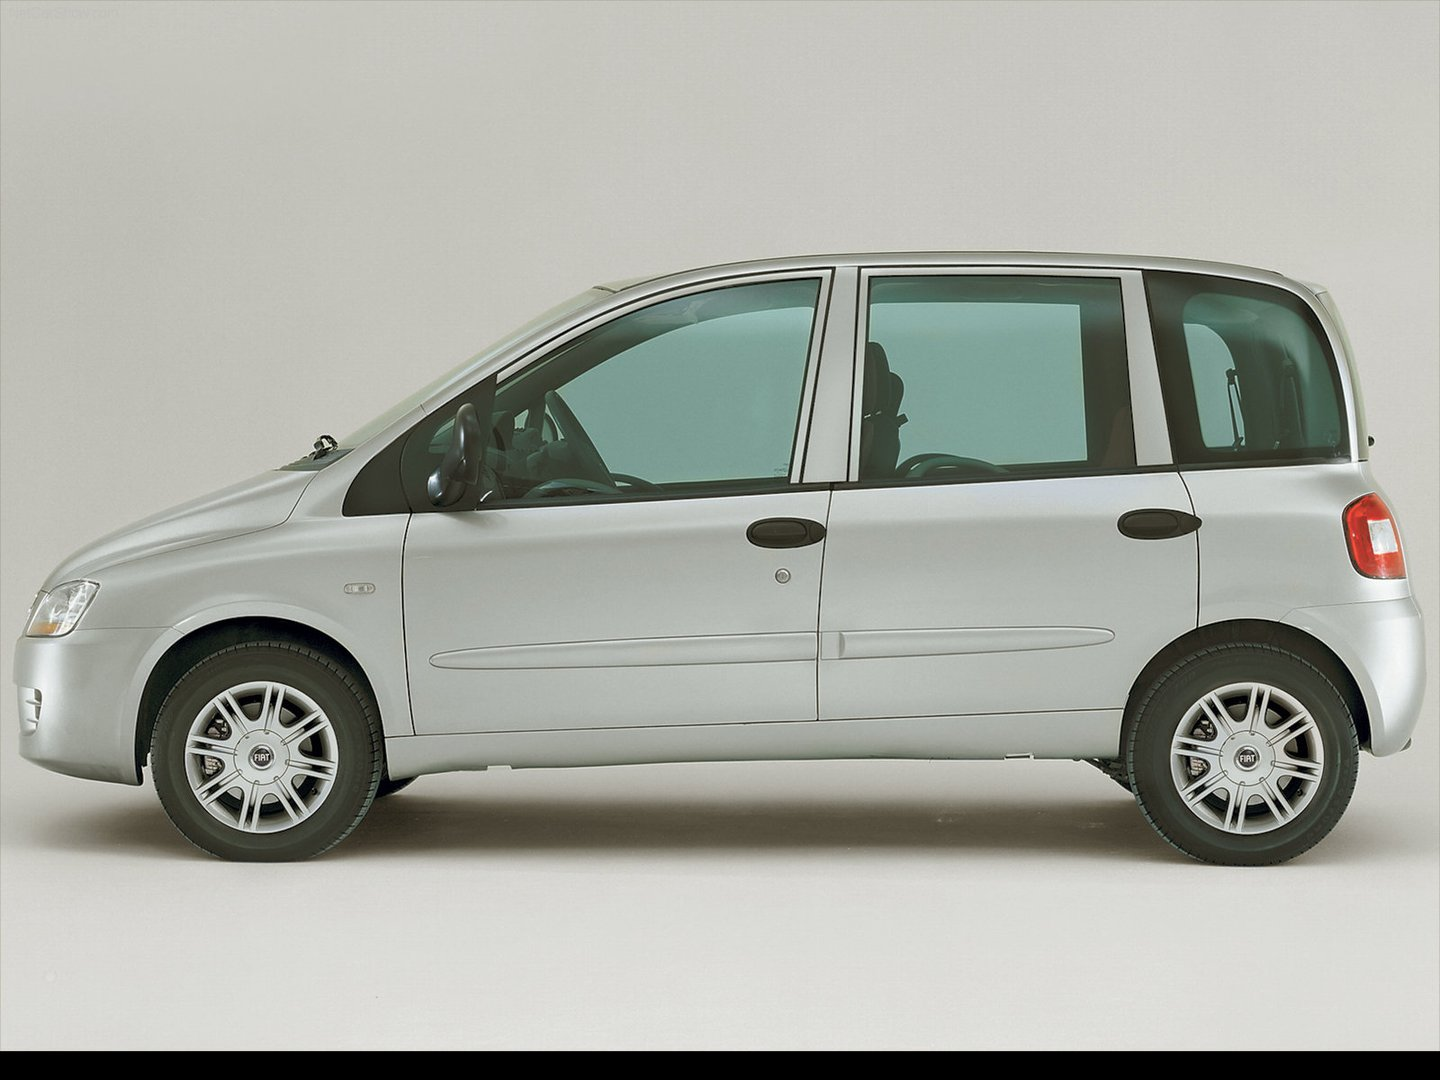 Fiat-Multipla_2004_1600x1200_wallpaper_38.jpg